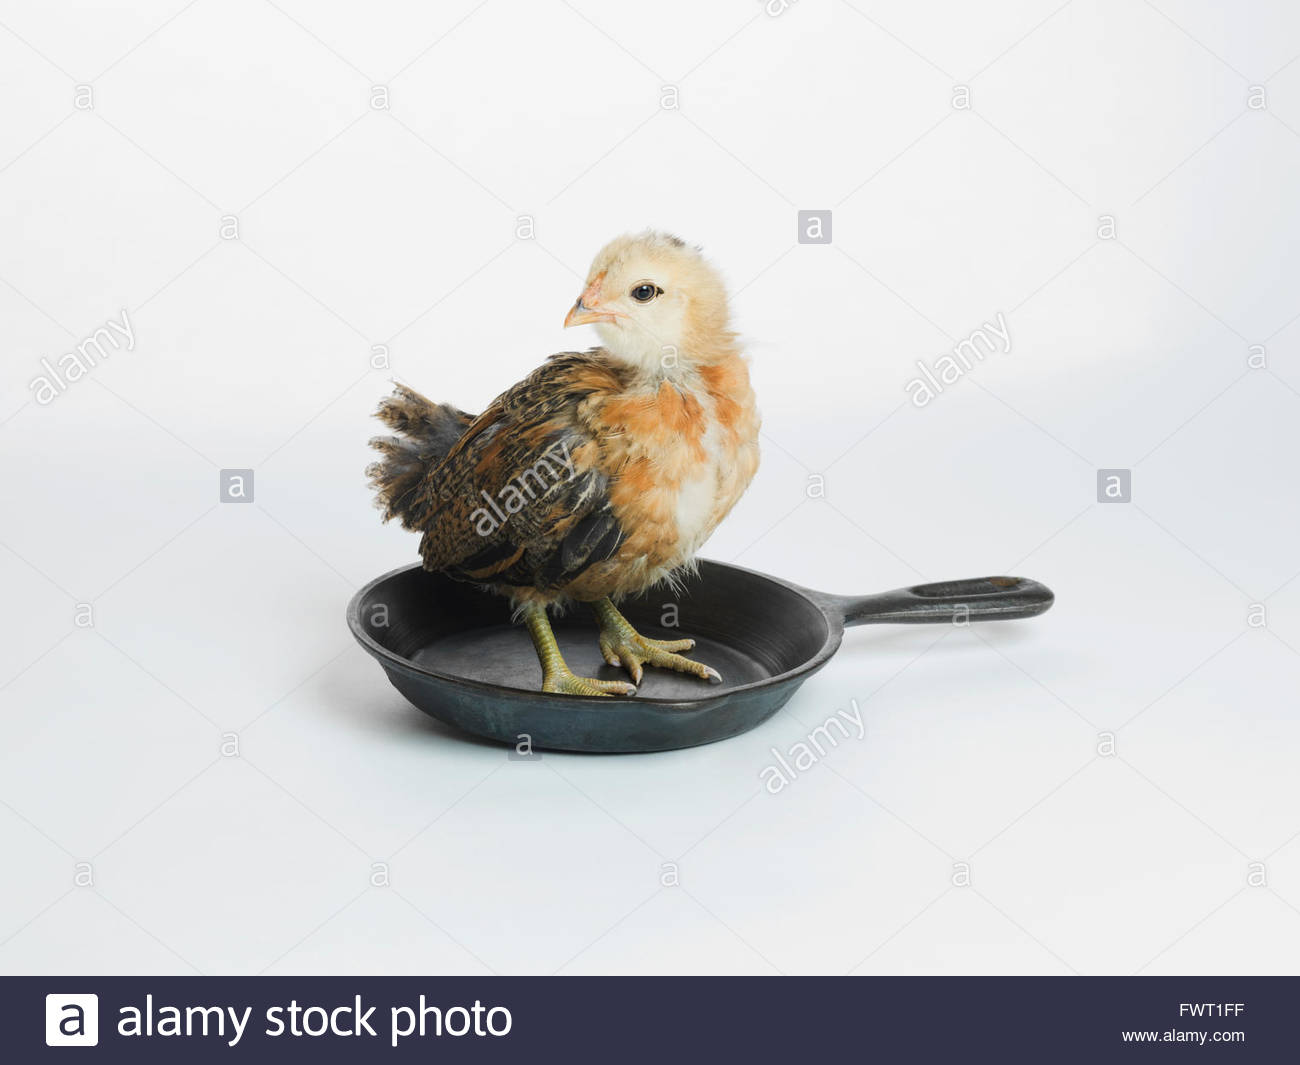 Chicken standing in pan - Stock Image